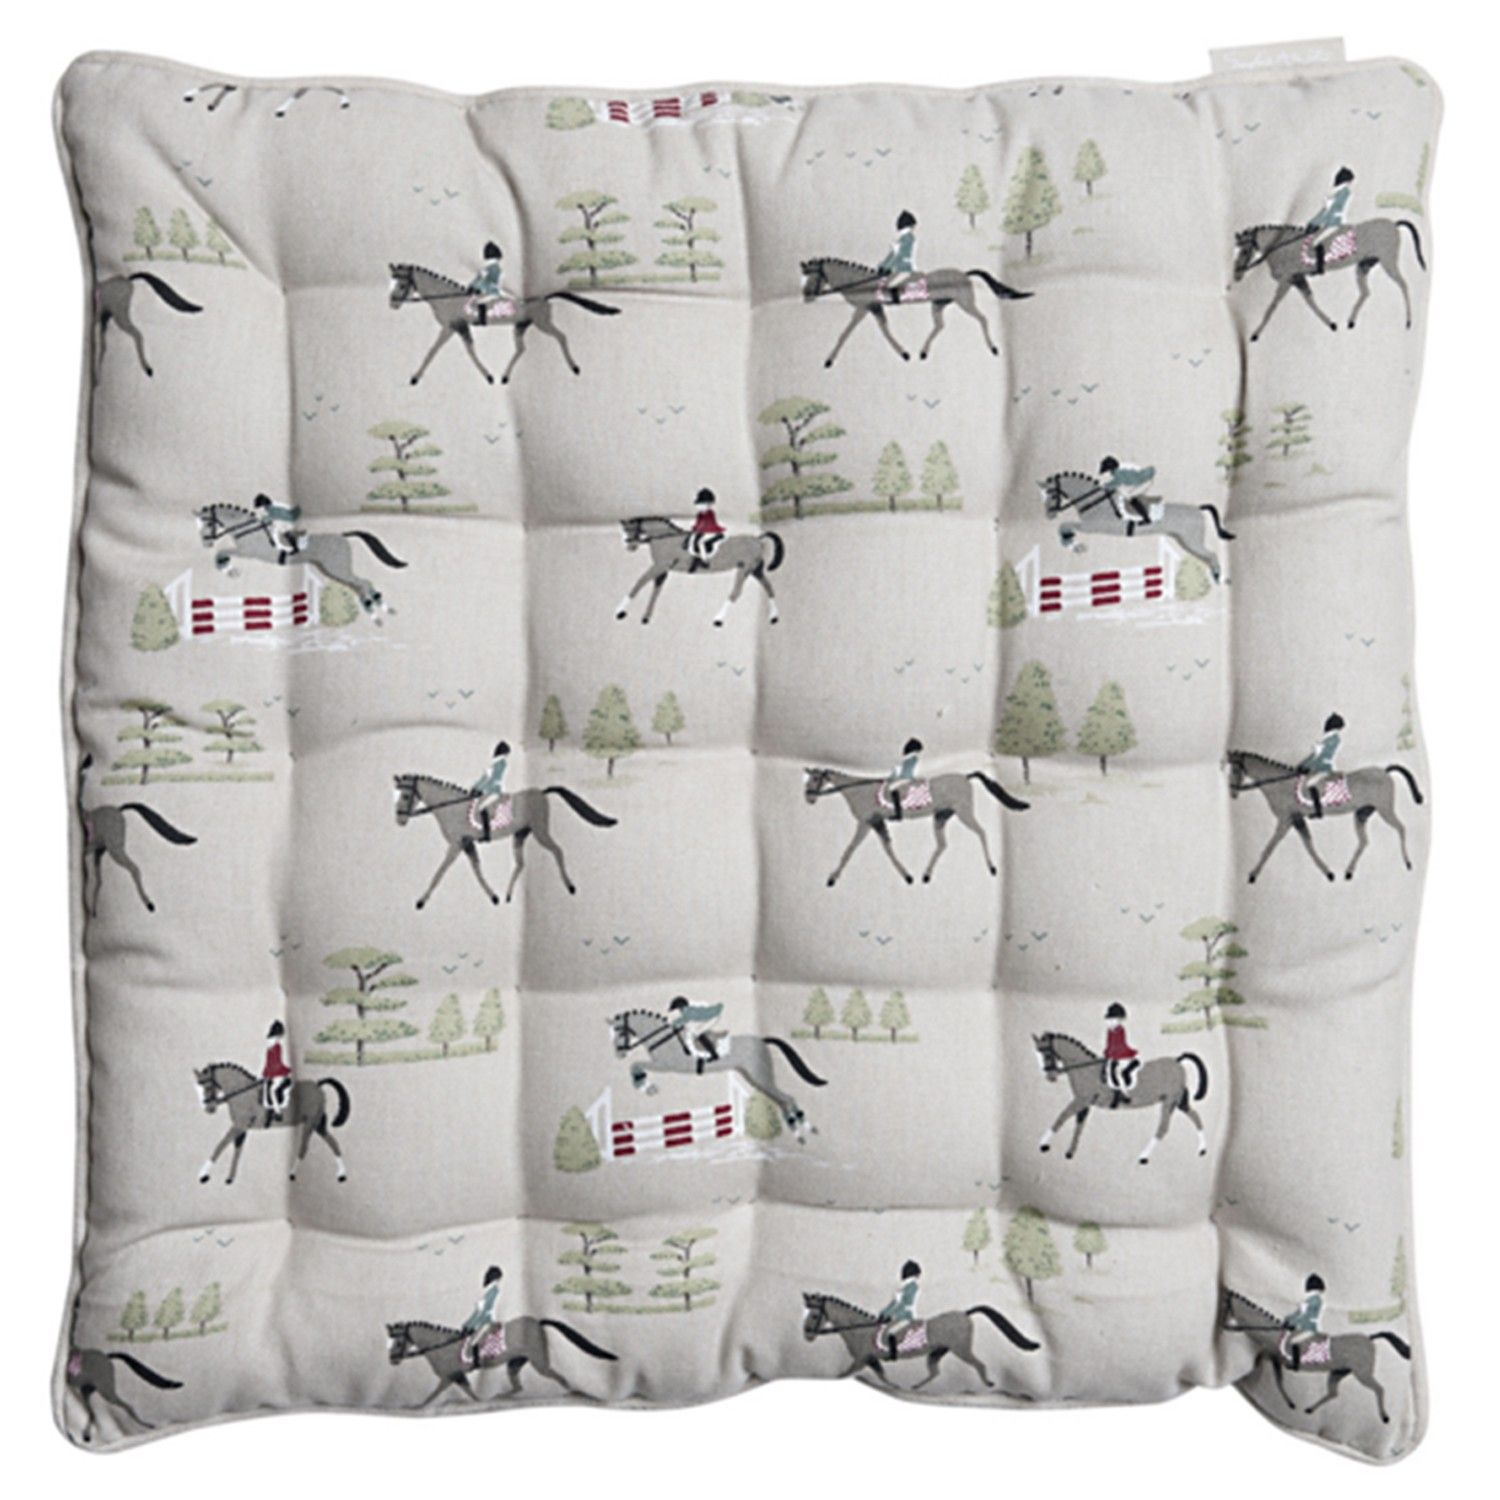 Sophie Allport Horses Chair Pad Chair Pad Cushion Chair Seat Chair Cushion Country Home Country Chair Pads Kitchen Chair Pads Garden Seat Cushions